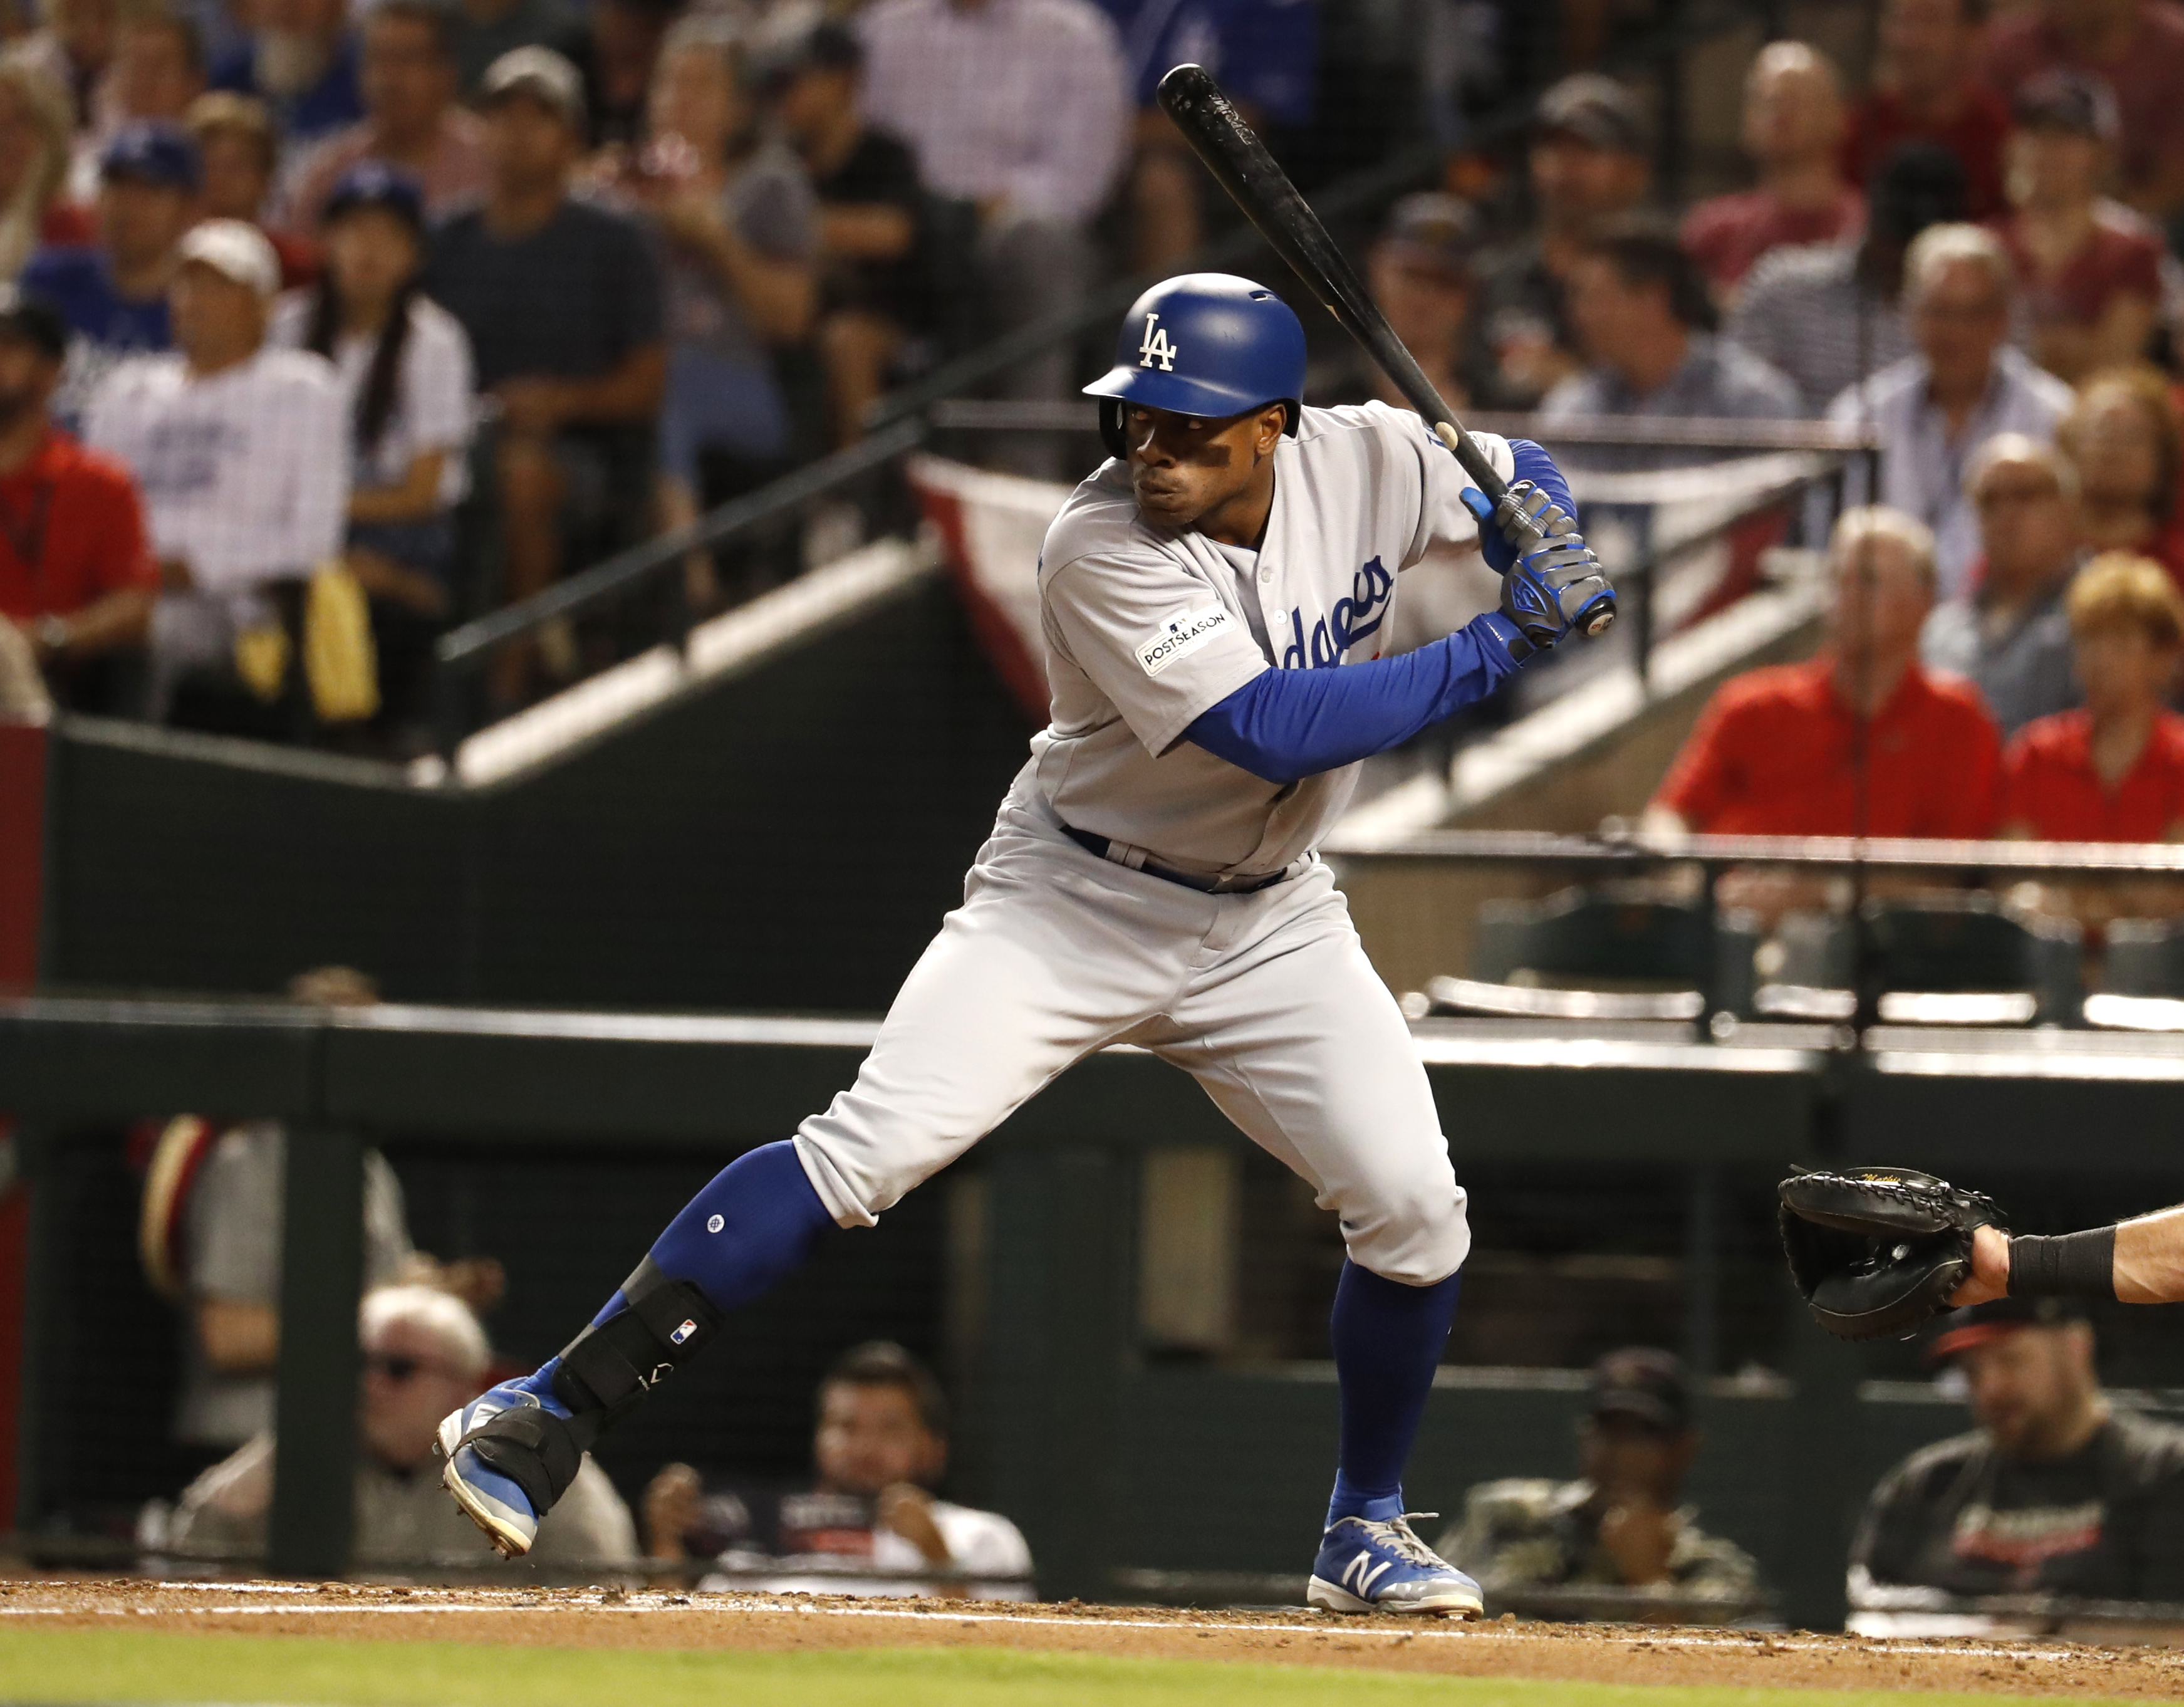 Dodgers World Series roster: Curtis Granderson out, Corey Seager officially back